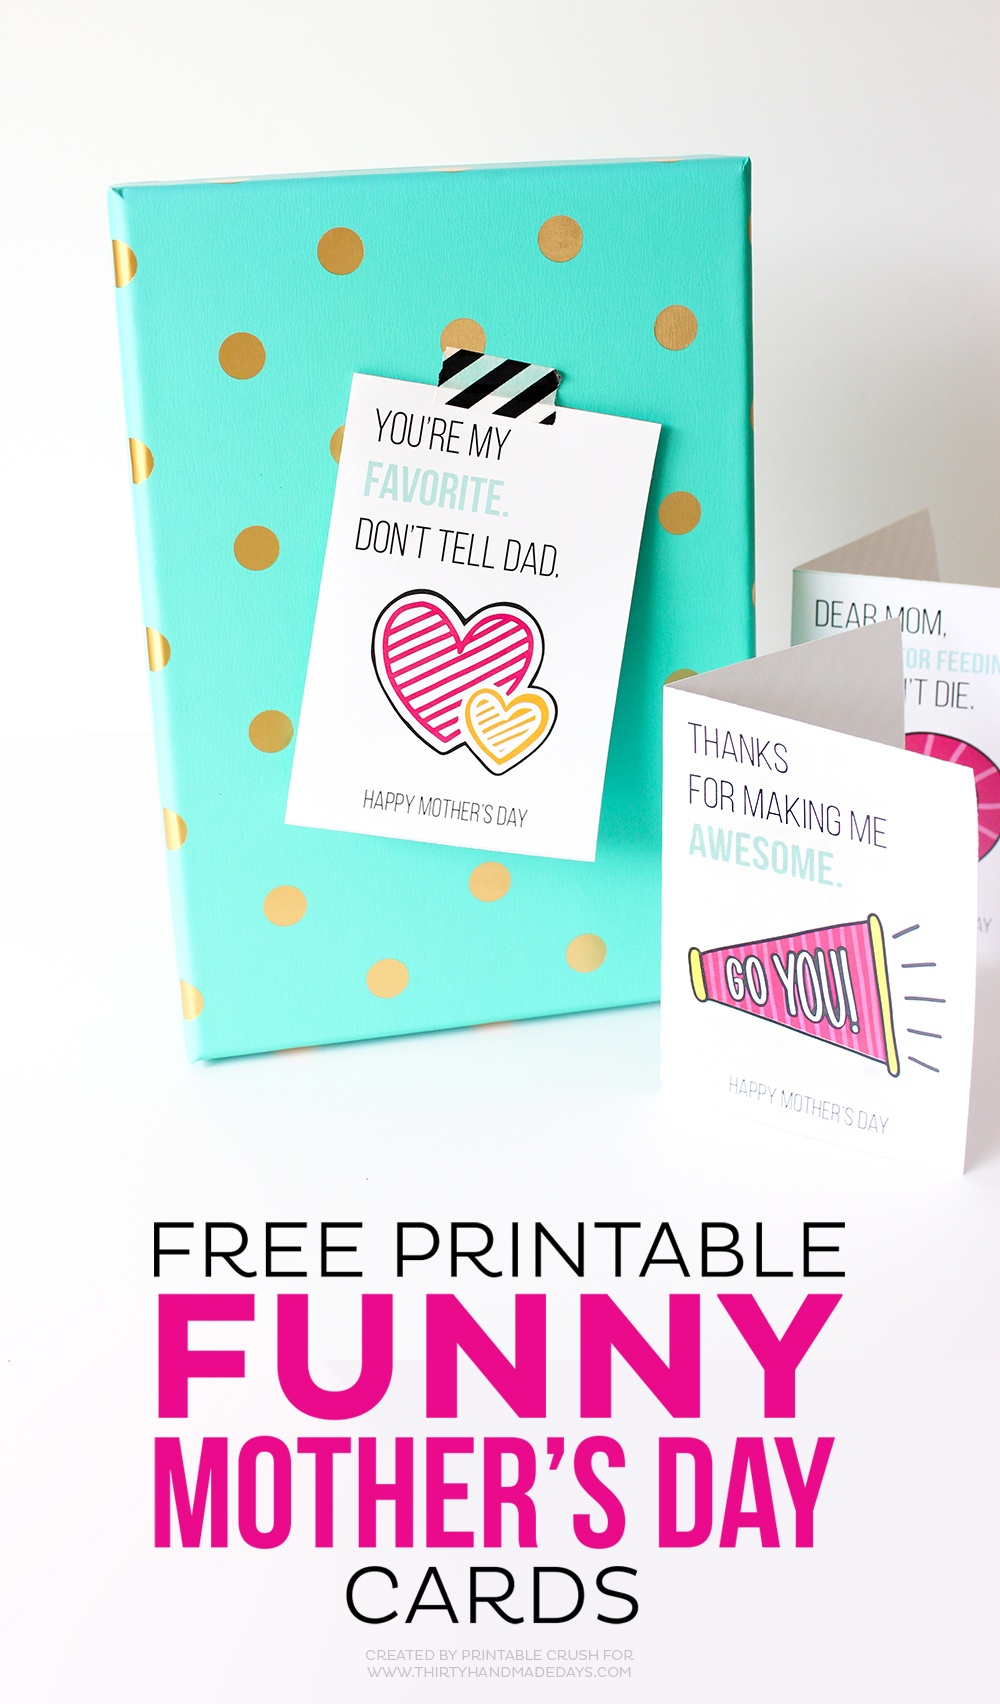 Printable Mother's Day Cards - Make Mother Day Card Online Free Printable